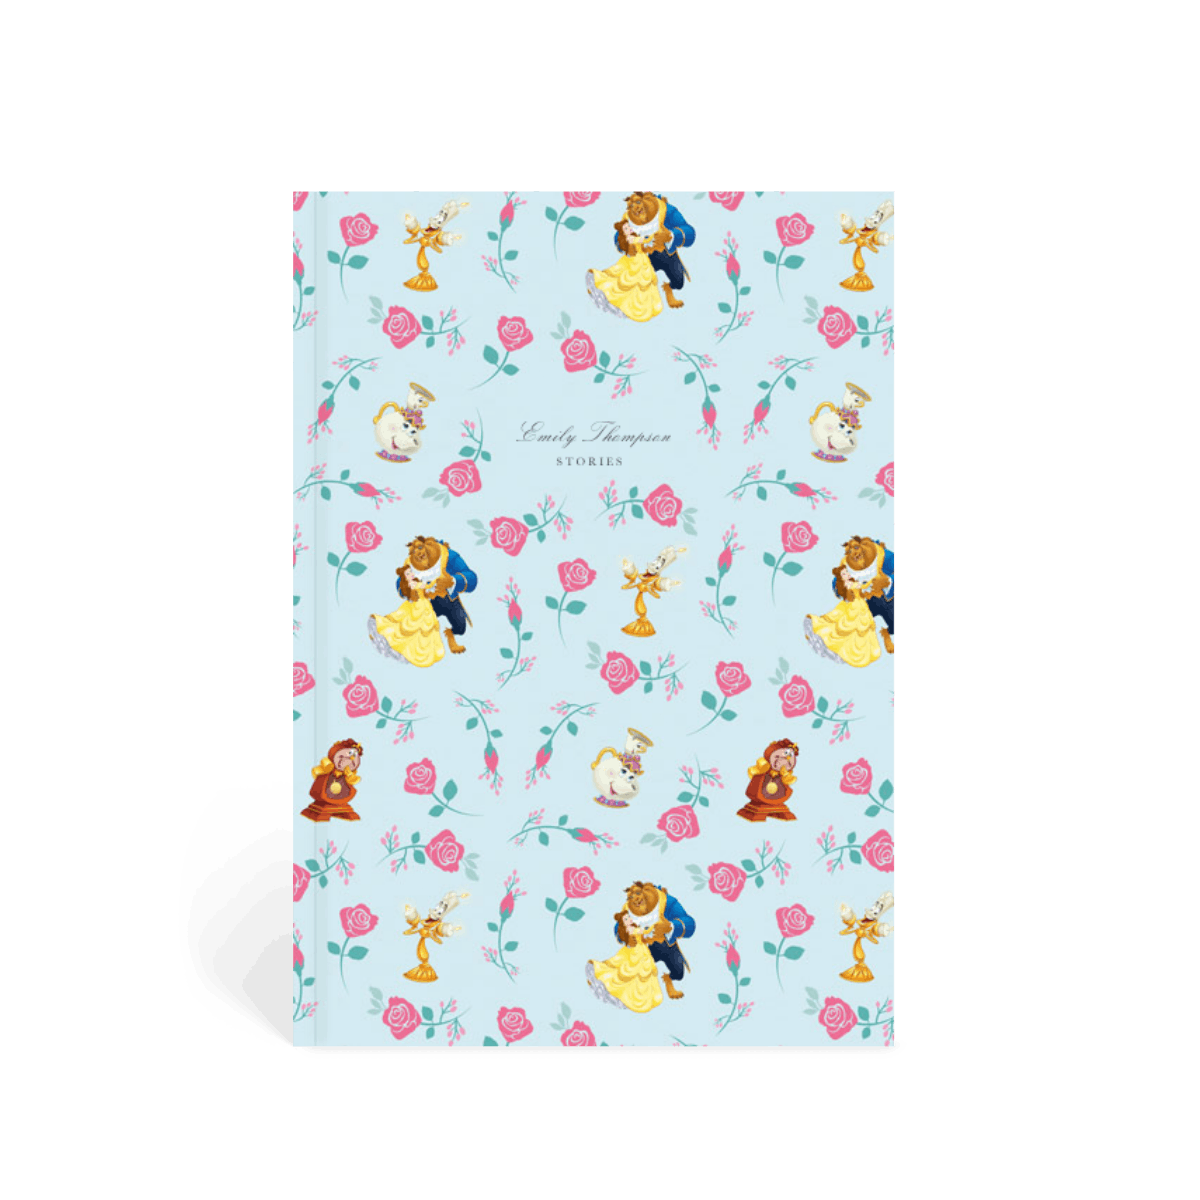 Https%3a%2f%2fwww.papier.com%2fproduct image%2f55690%2f25%2fbeauty the beast 13375 vorderseite 1542299692.png?ixlib=rb 1.1